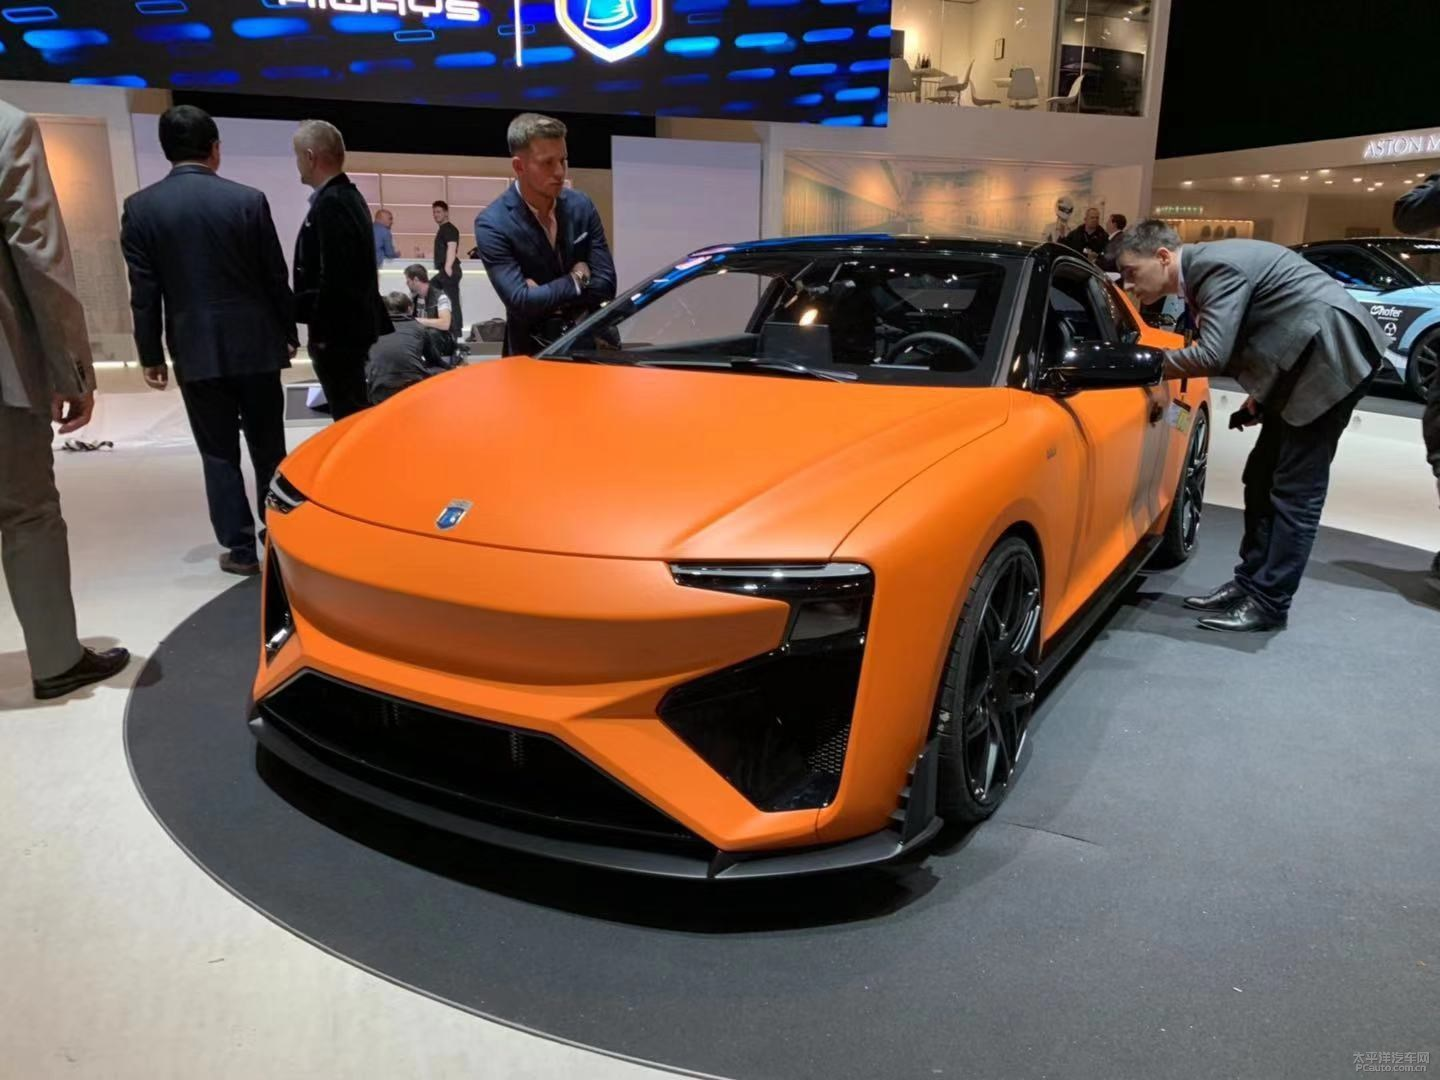 AIWAYS to Bring U5, Gumpert Nathalie and a New Concept Car to 2019 Shanghai Auto Show